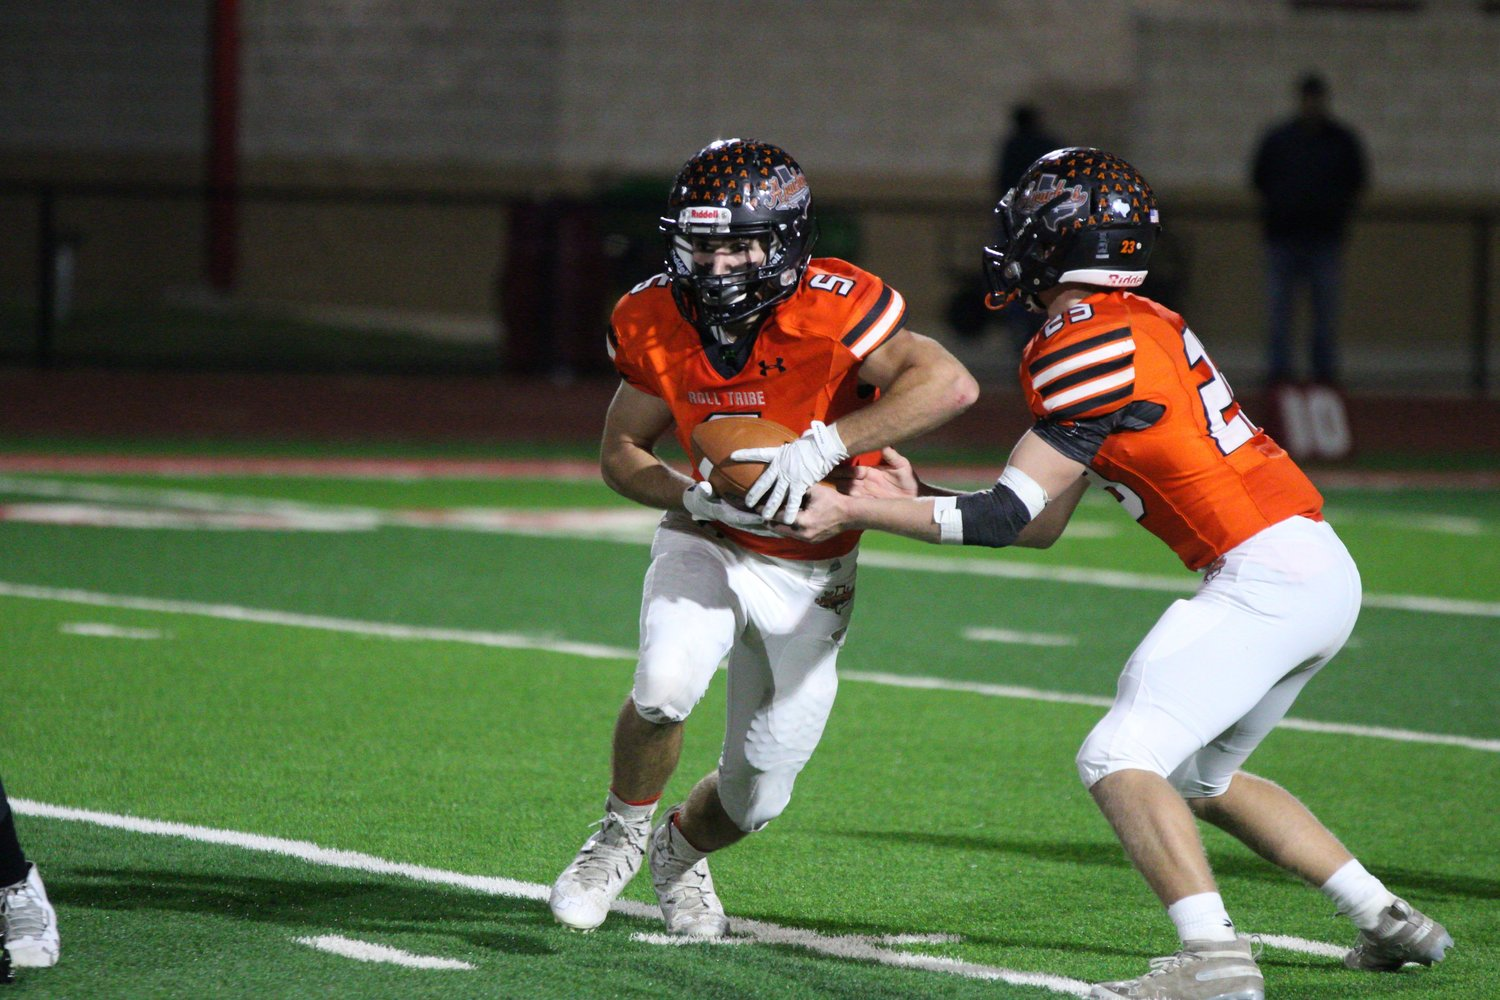 Seth Gibson (5) had four touchdowns and nearly 200 yards rushing in Gonzales' 35-15 victory over Kingsville in the bi-district round.